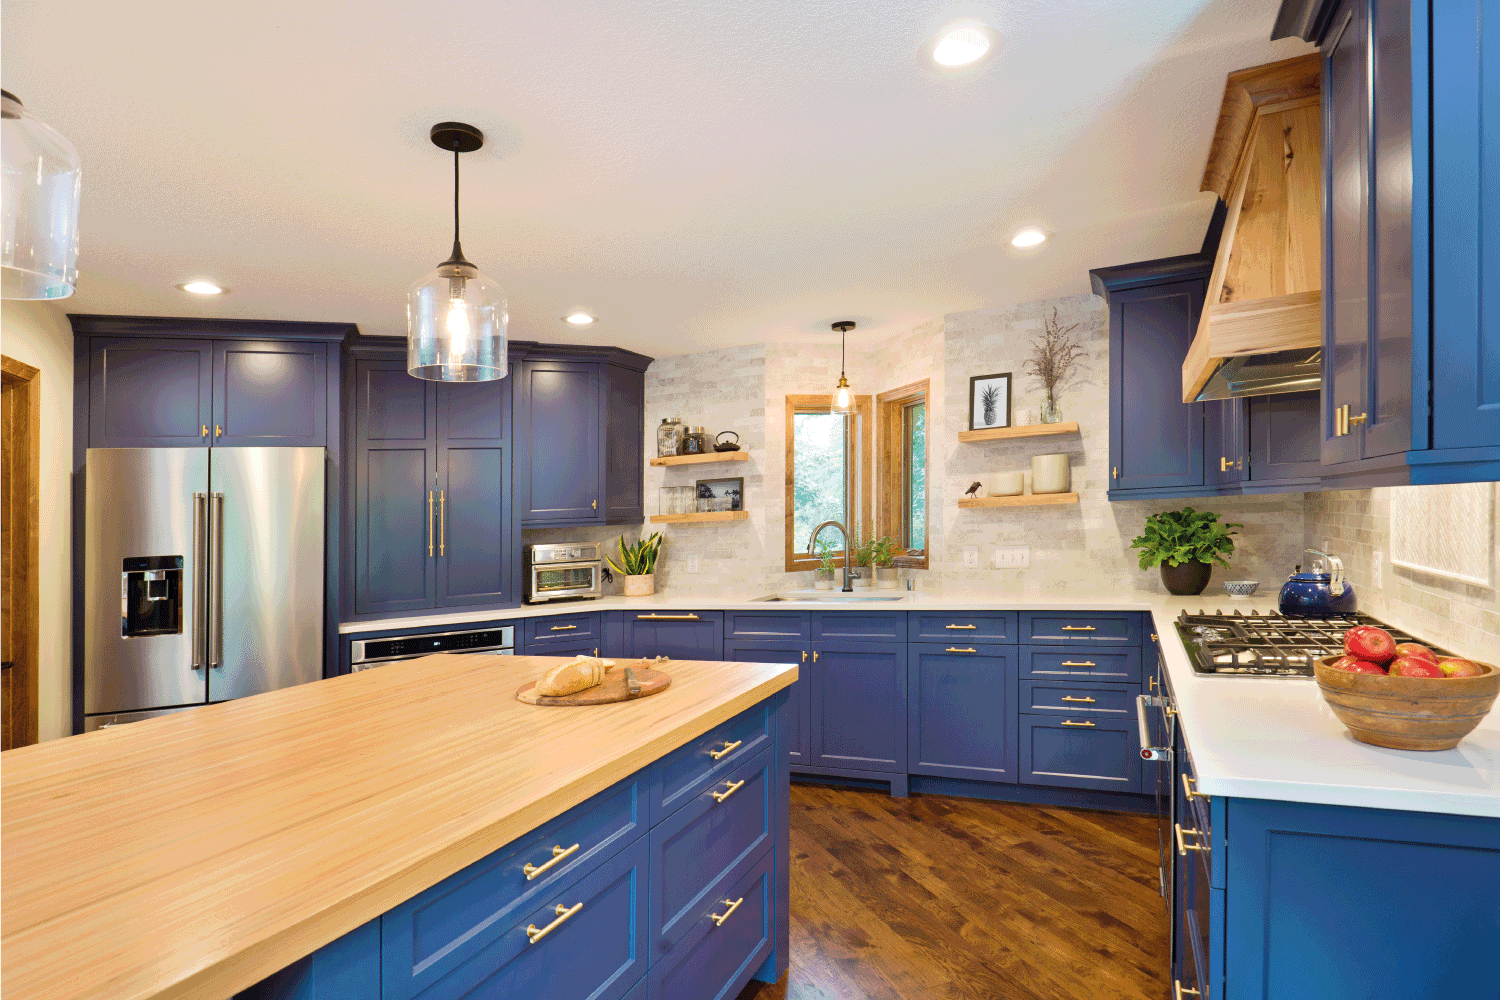 A contemporary kitchen renovation remodeling featuring a center island, hardwood floor and quartz counter.